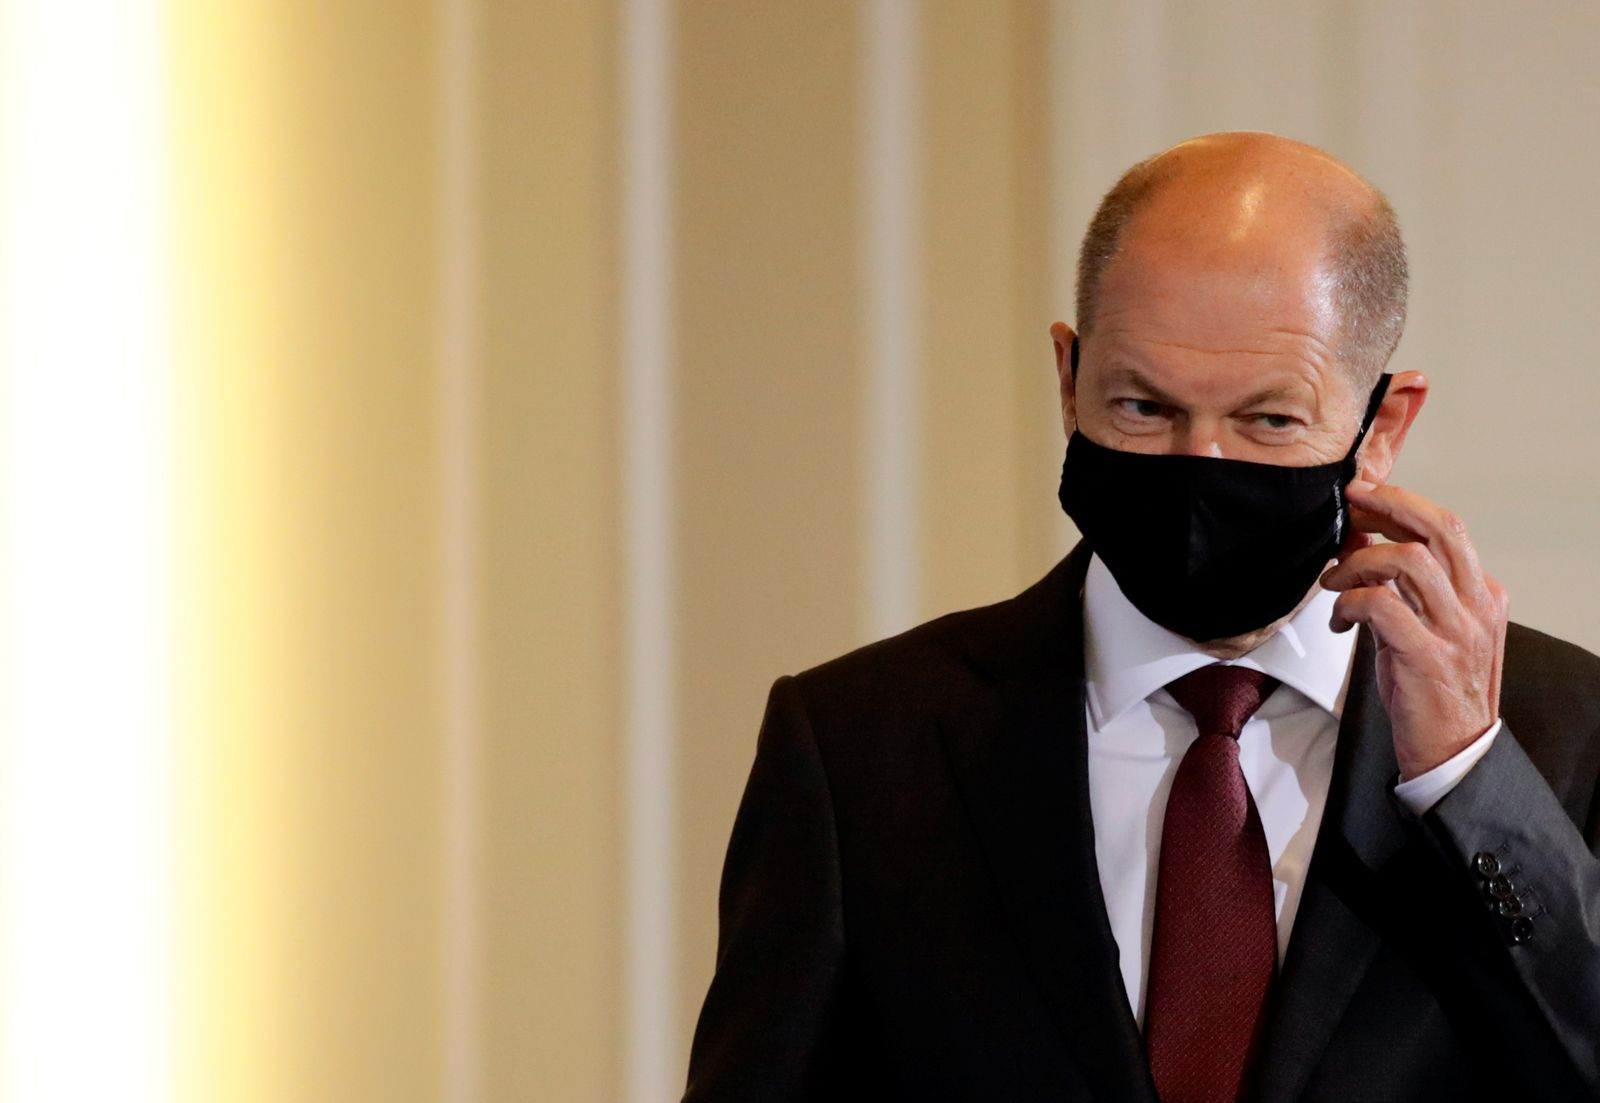 German Finance Minister Scholz and Justice Minister Lambrecht hold news conference in Berlin